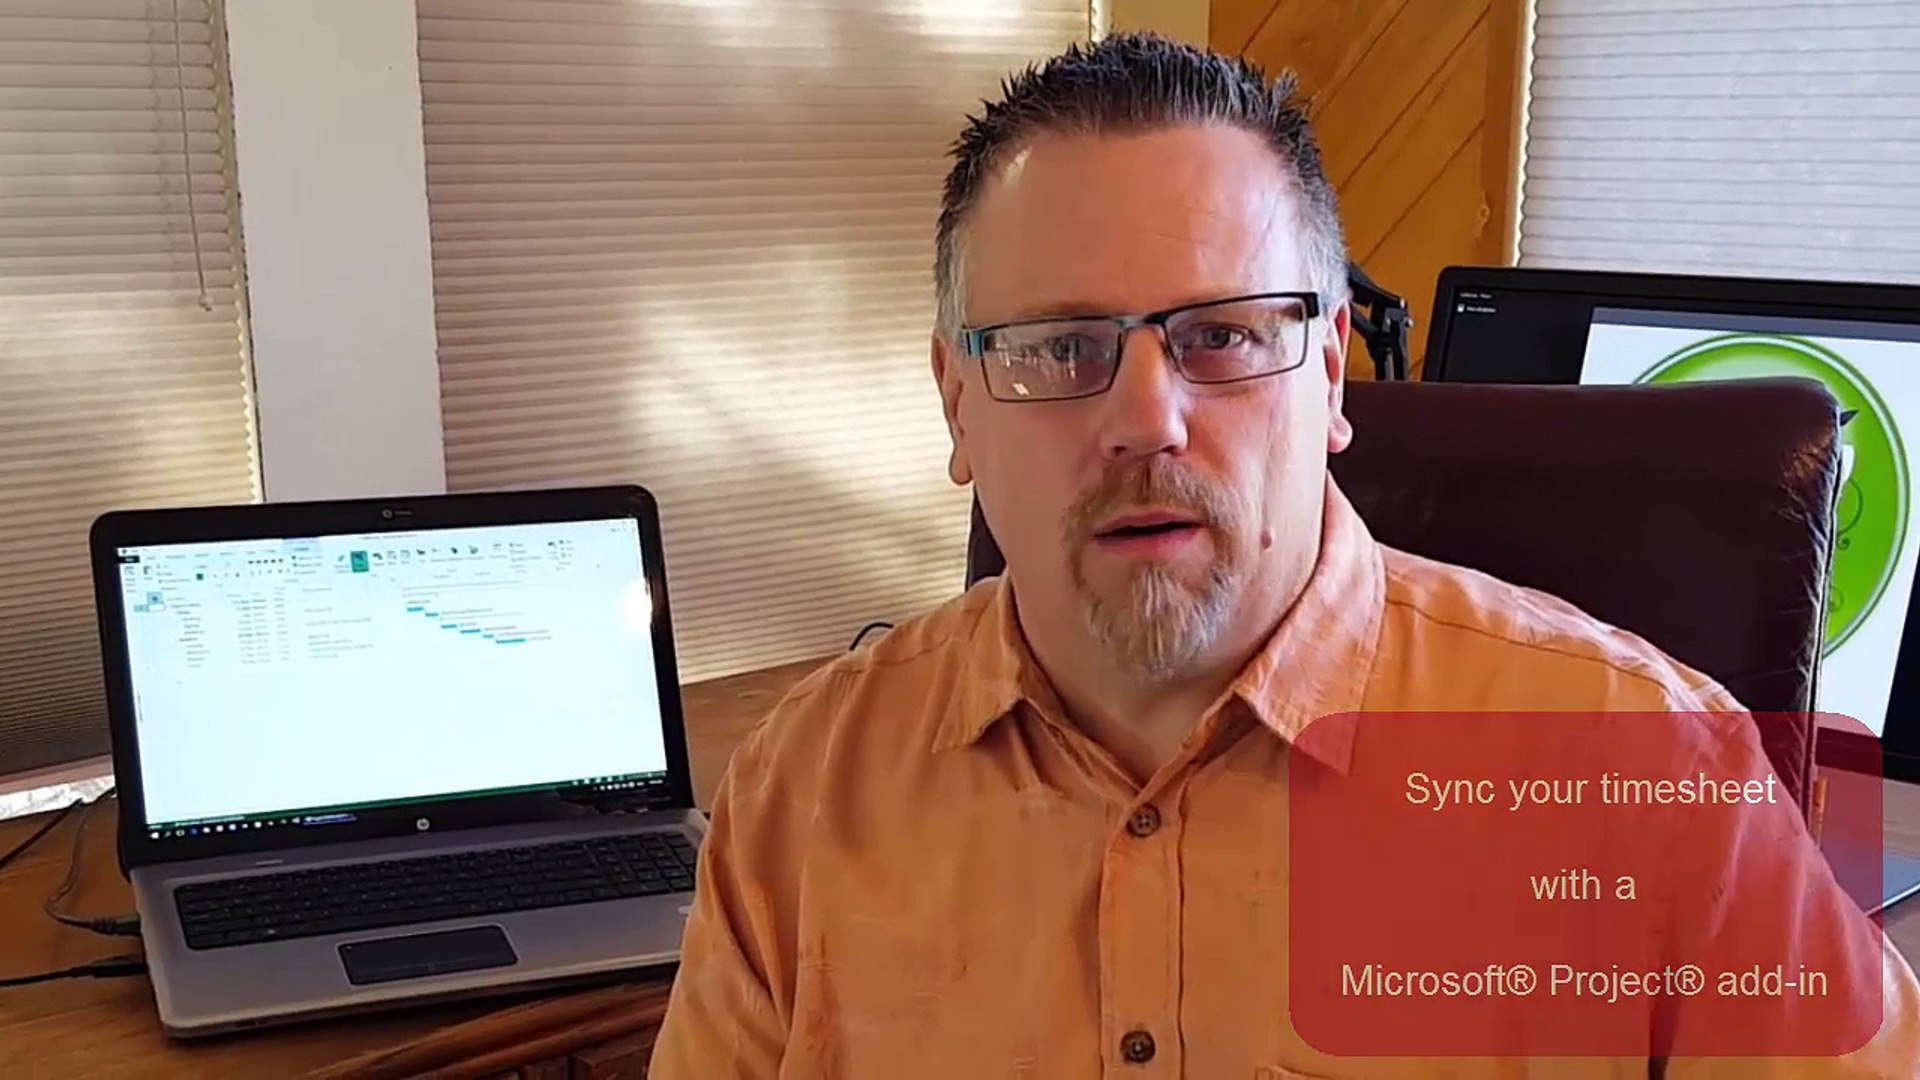 How to use MSP Add-in to Sync Time